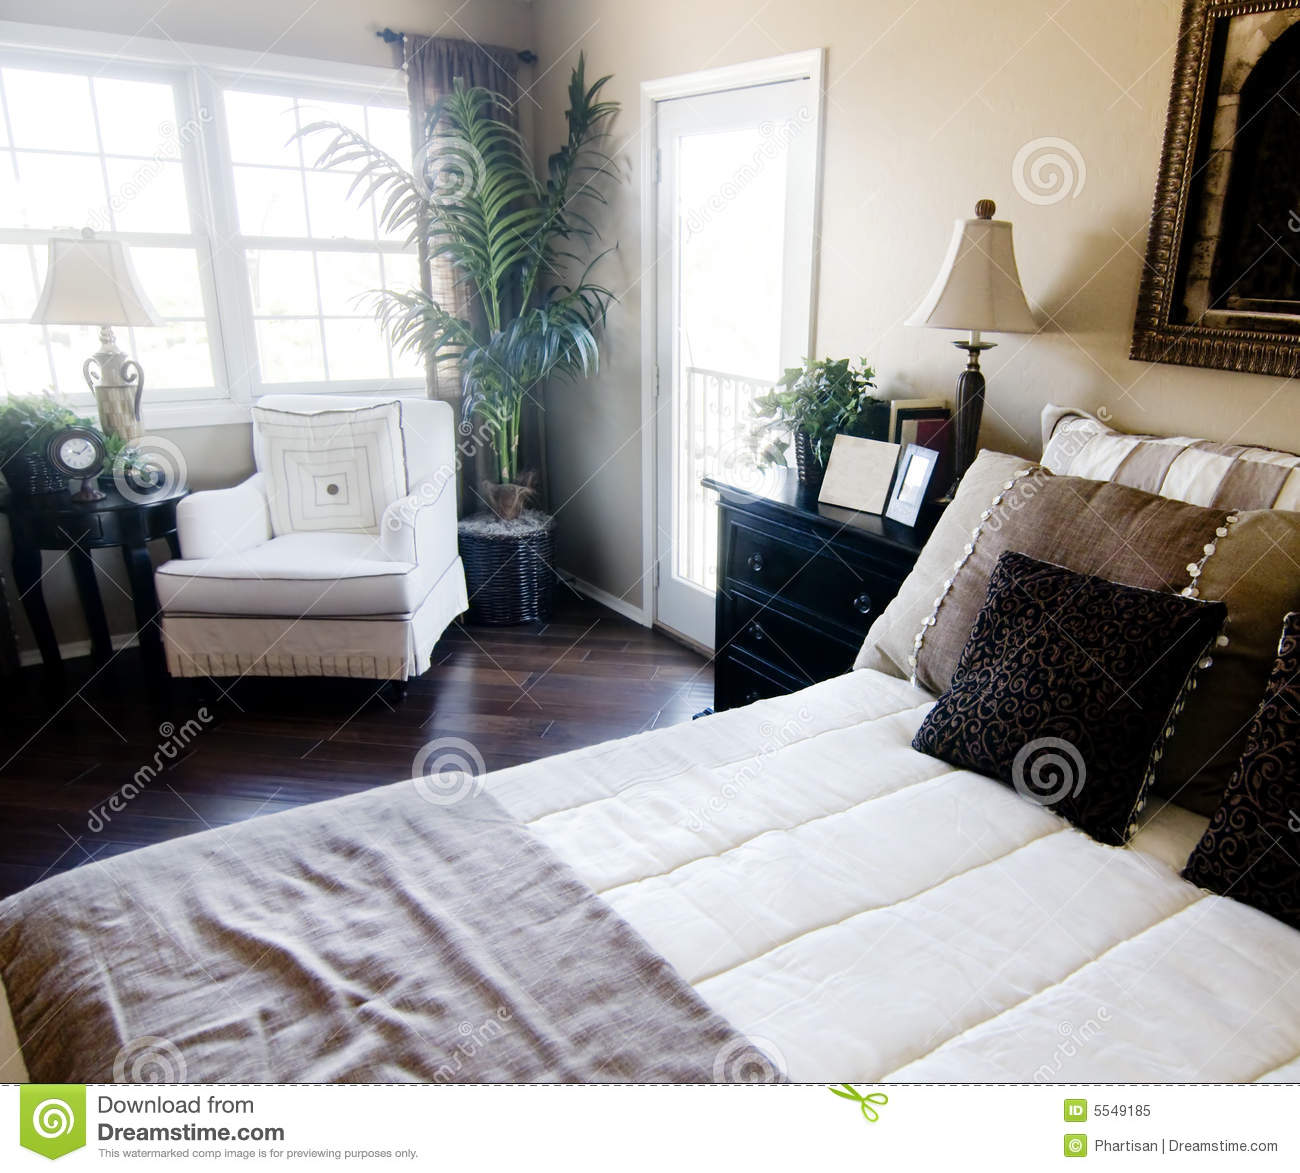 Beautiful bedroom interior royalty free stock photography for Beautiful rooms interior design